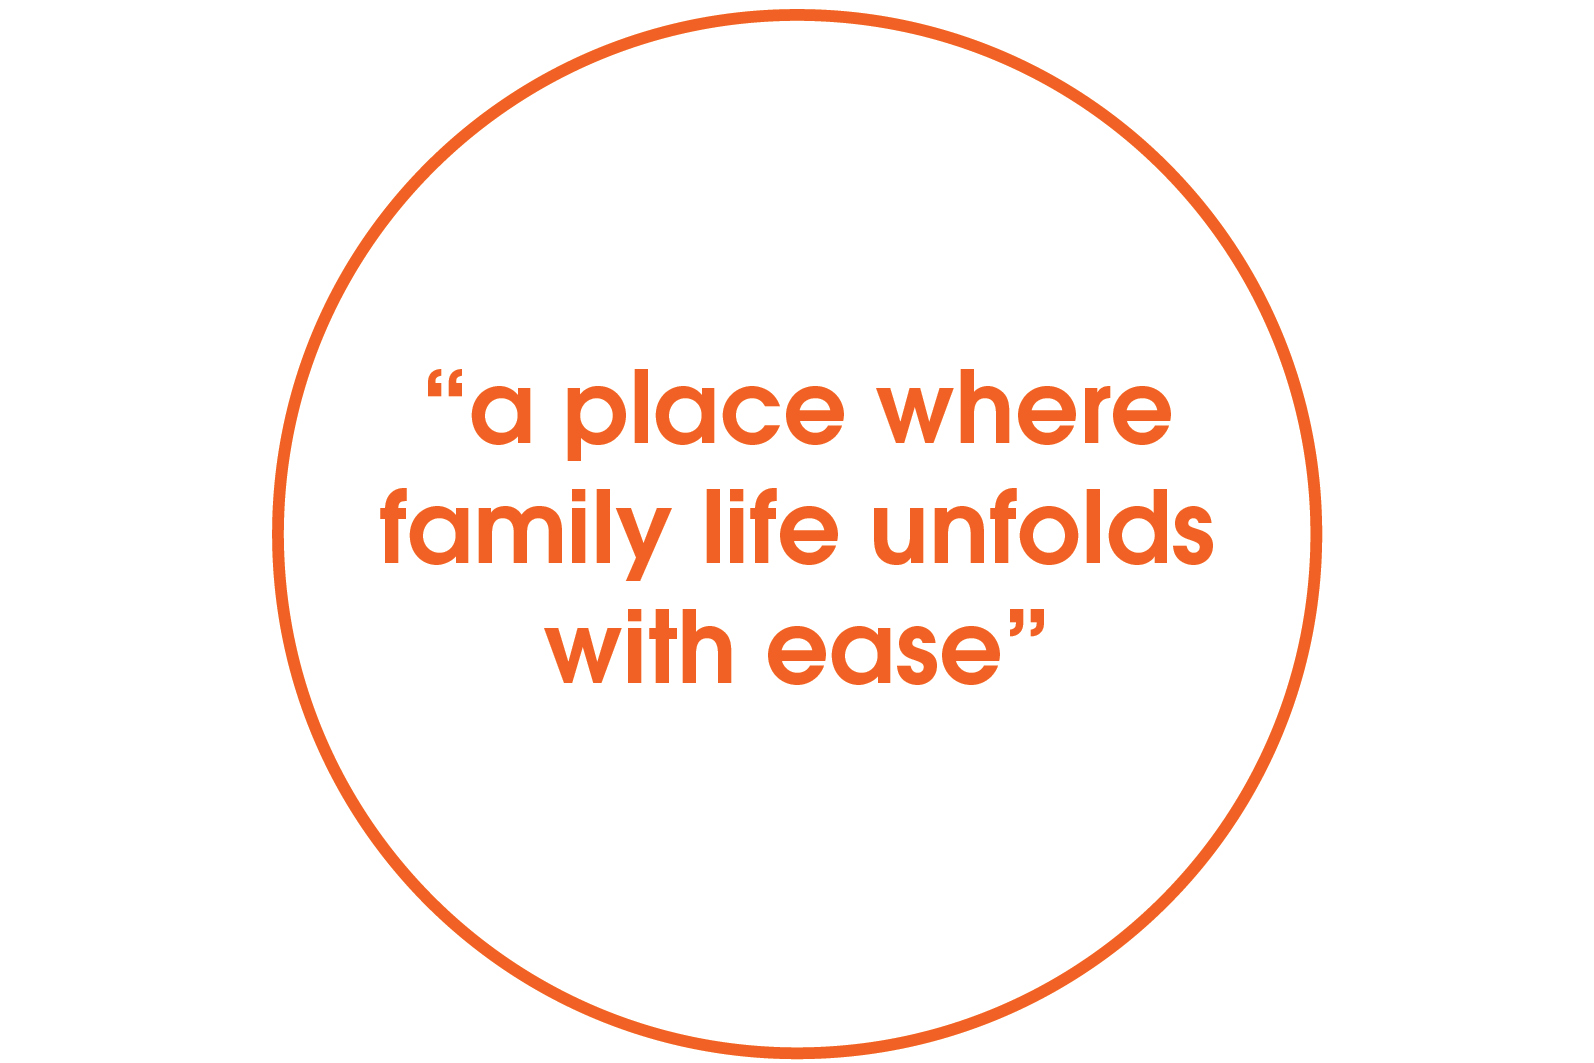 a place where family life unfolds with ease quote